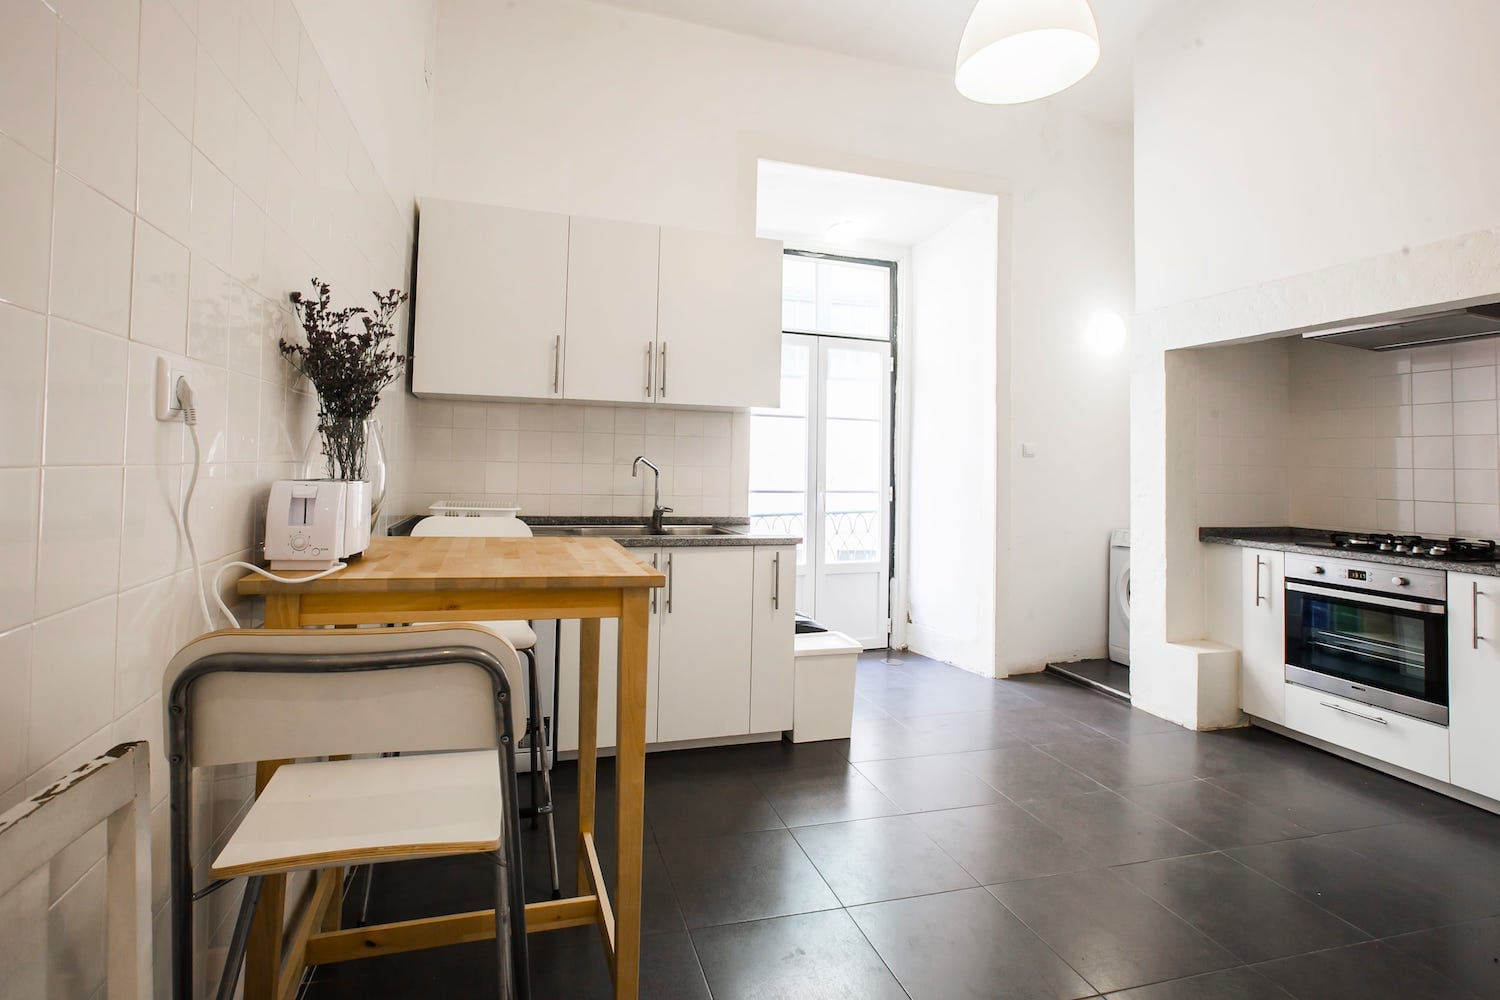 Cais - 1 bedroom in Coliving in Lisbon